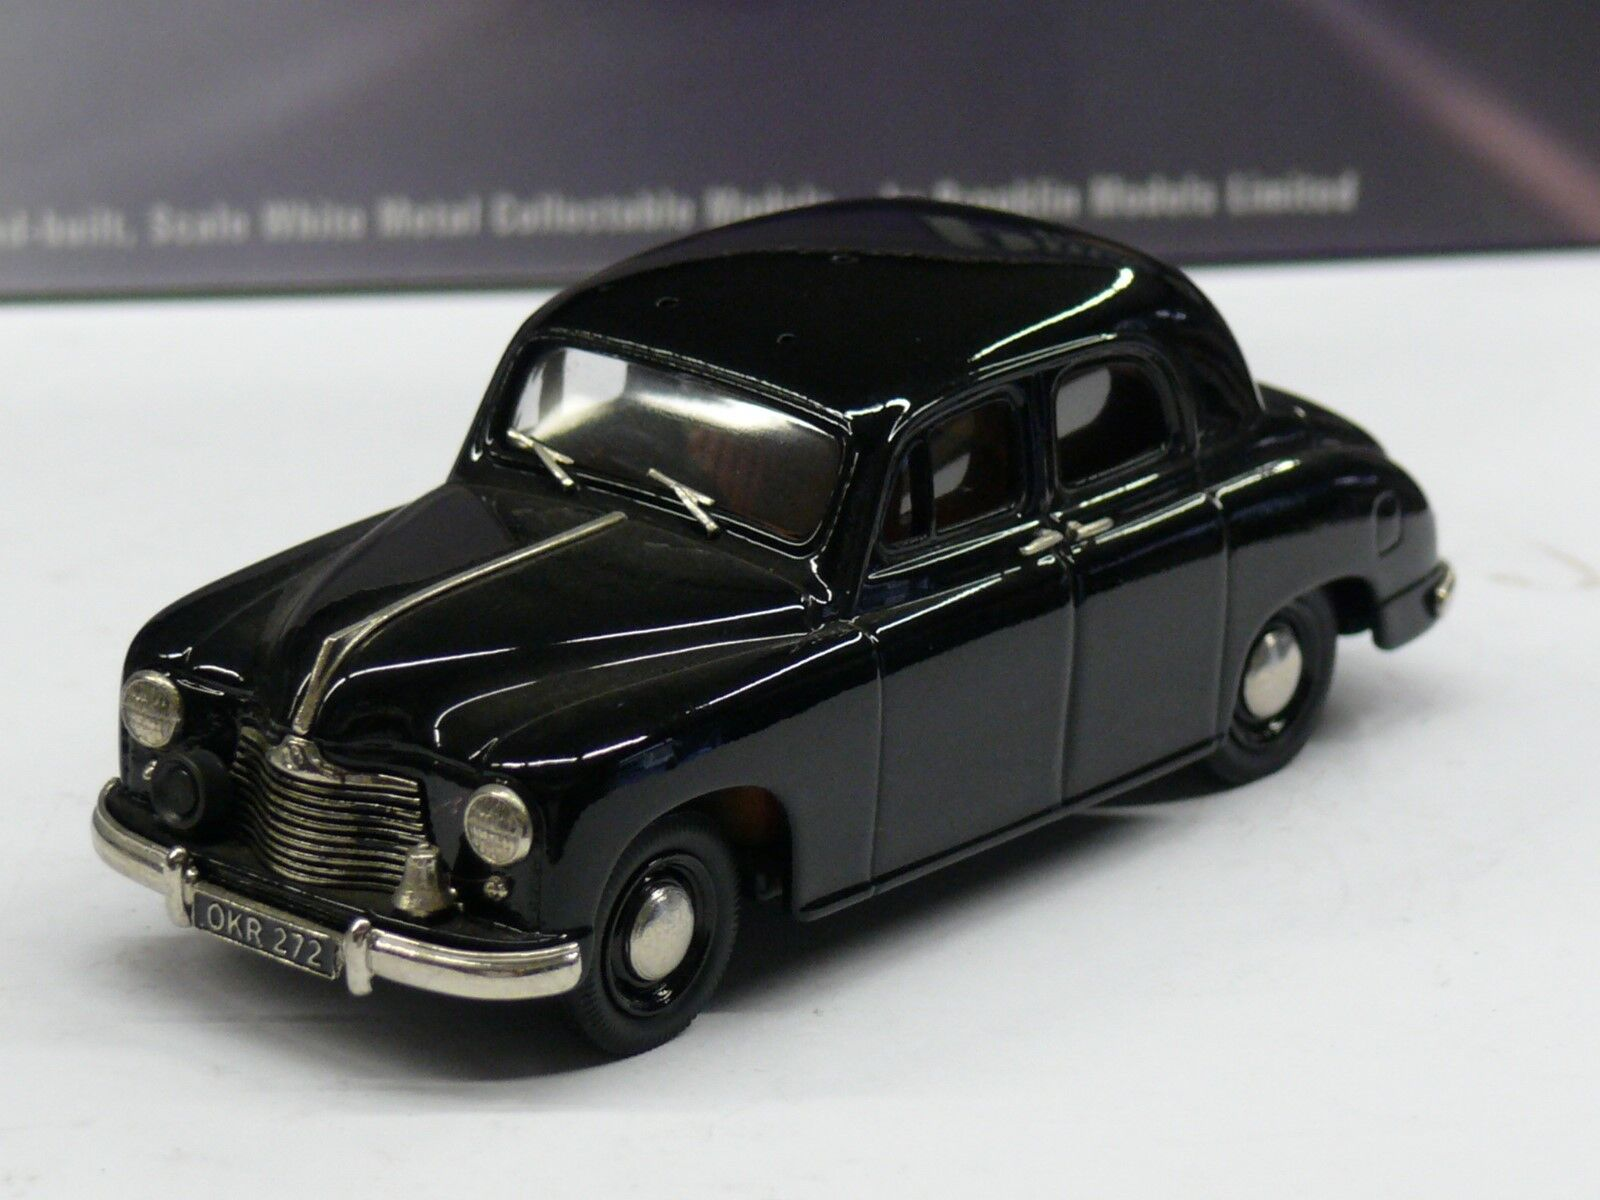 1/43 : 2018 SINGER SM 1500 KENT COUNTY CONSTABULARY, BROOKLIN POLICE Réf IPV.03